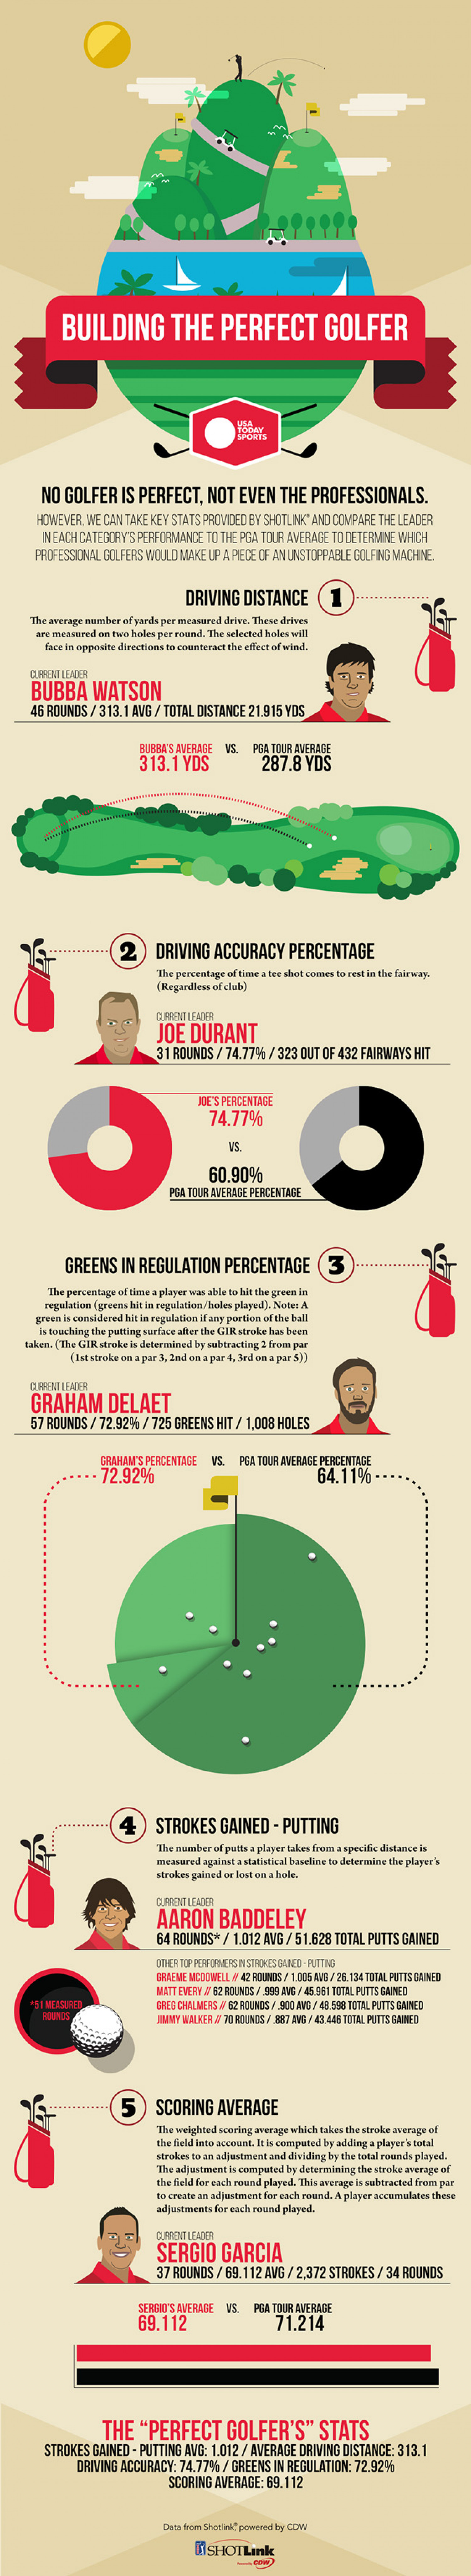 PGA/Shotlink infographic Infographic